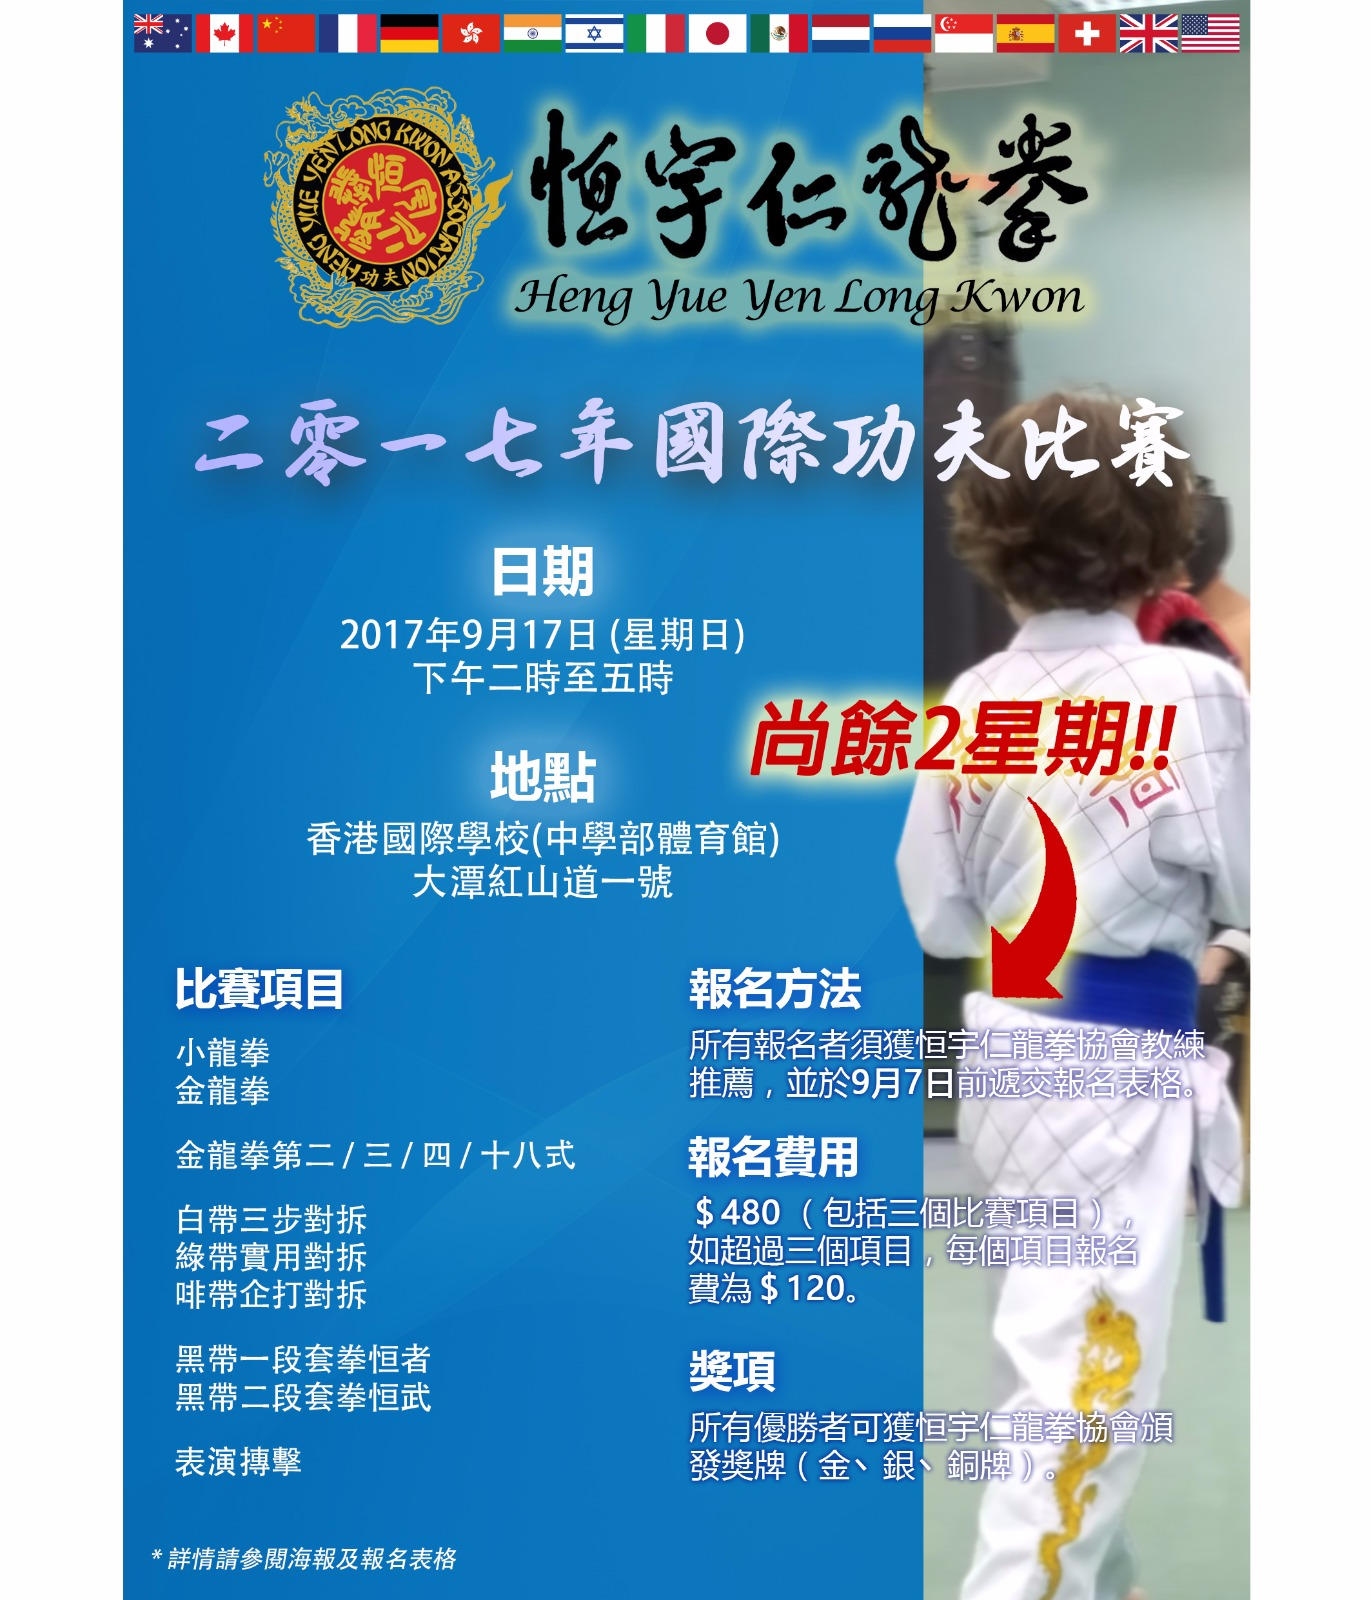 2017 International Kung Fu Competition